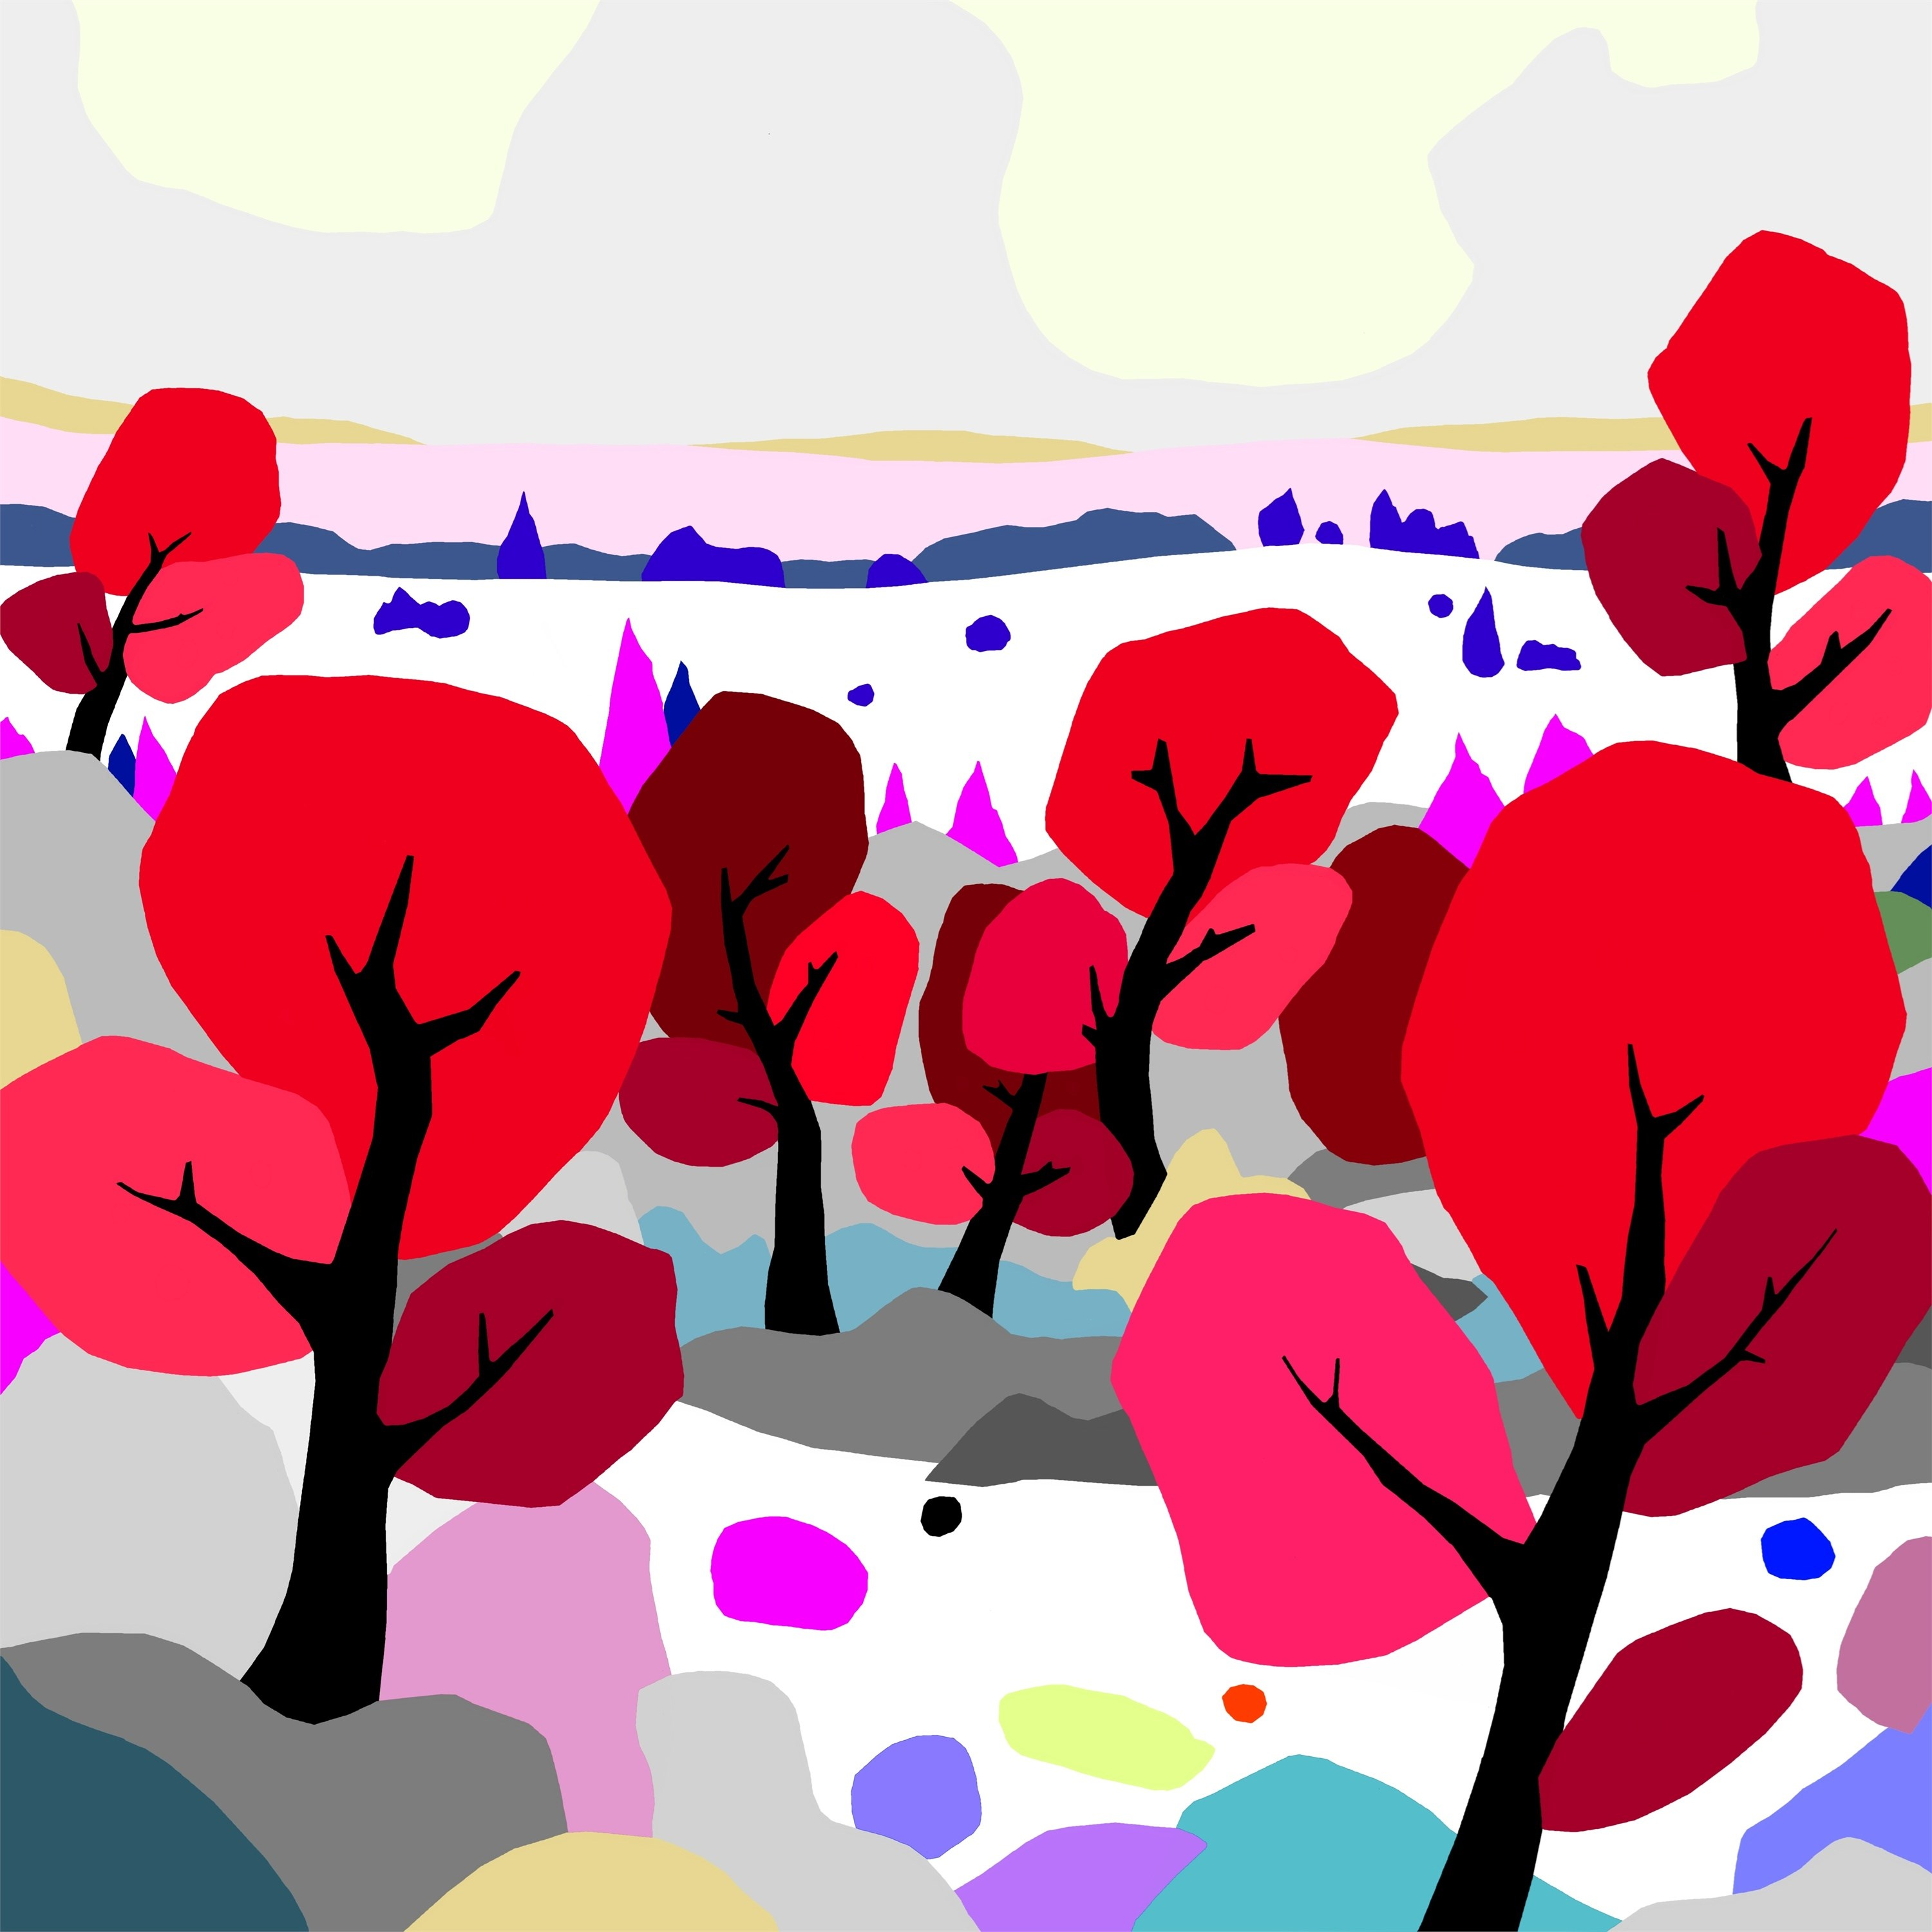 Red trees (árboles rojos), original Nature Digital Drawing and Illustration by Alejos Lorenzo Vergara